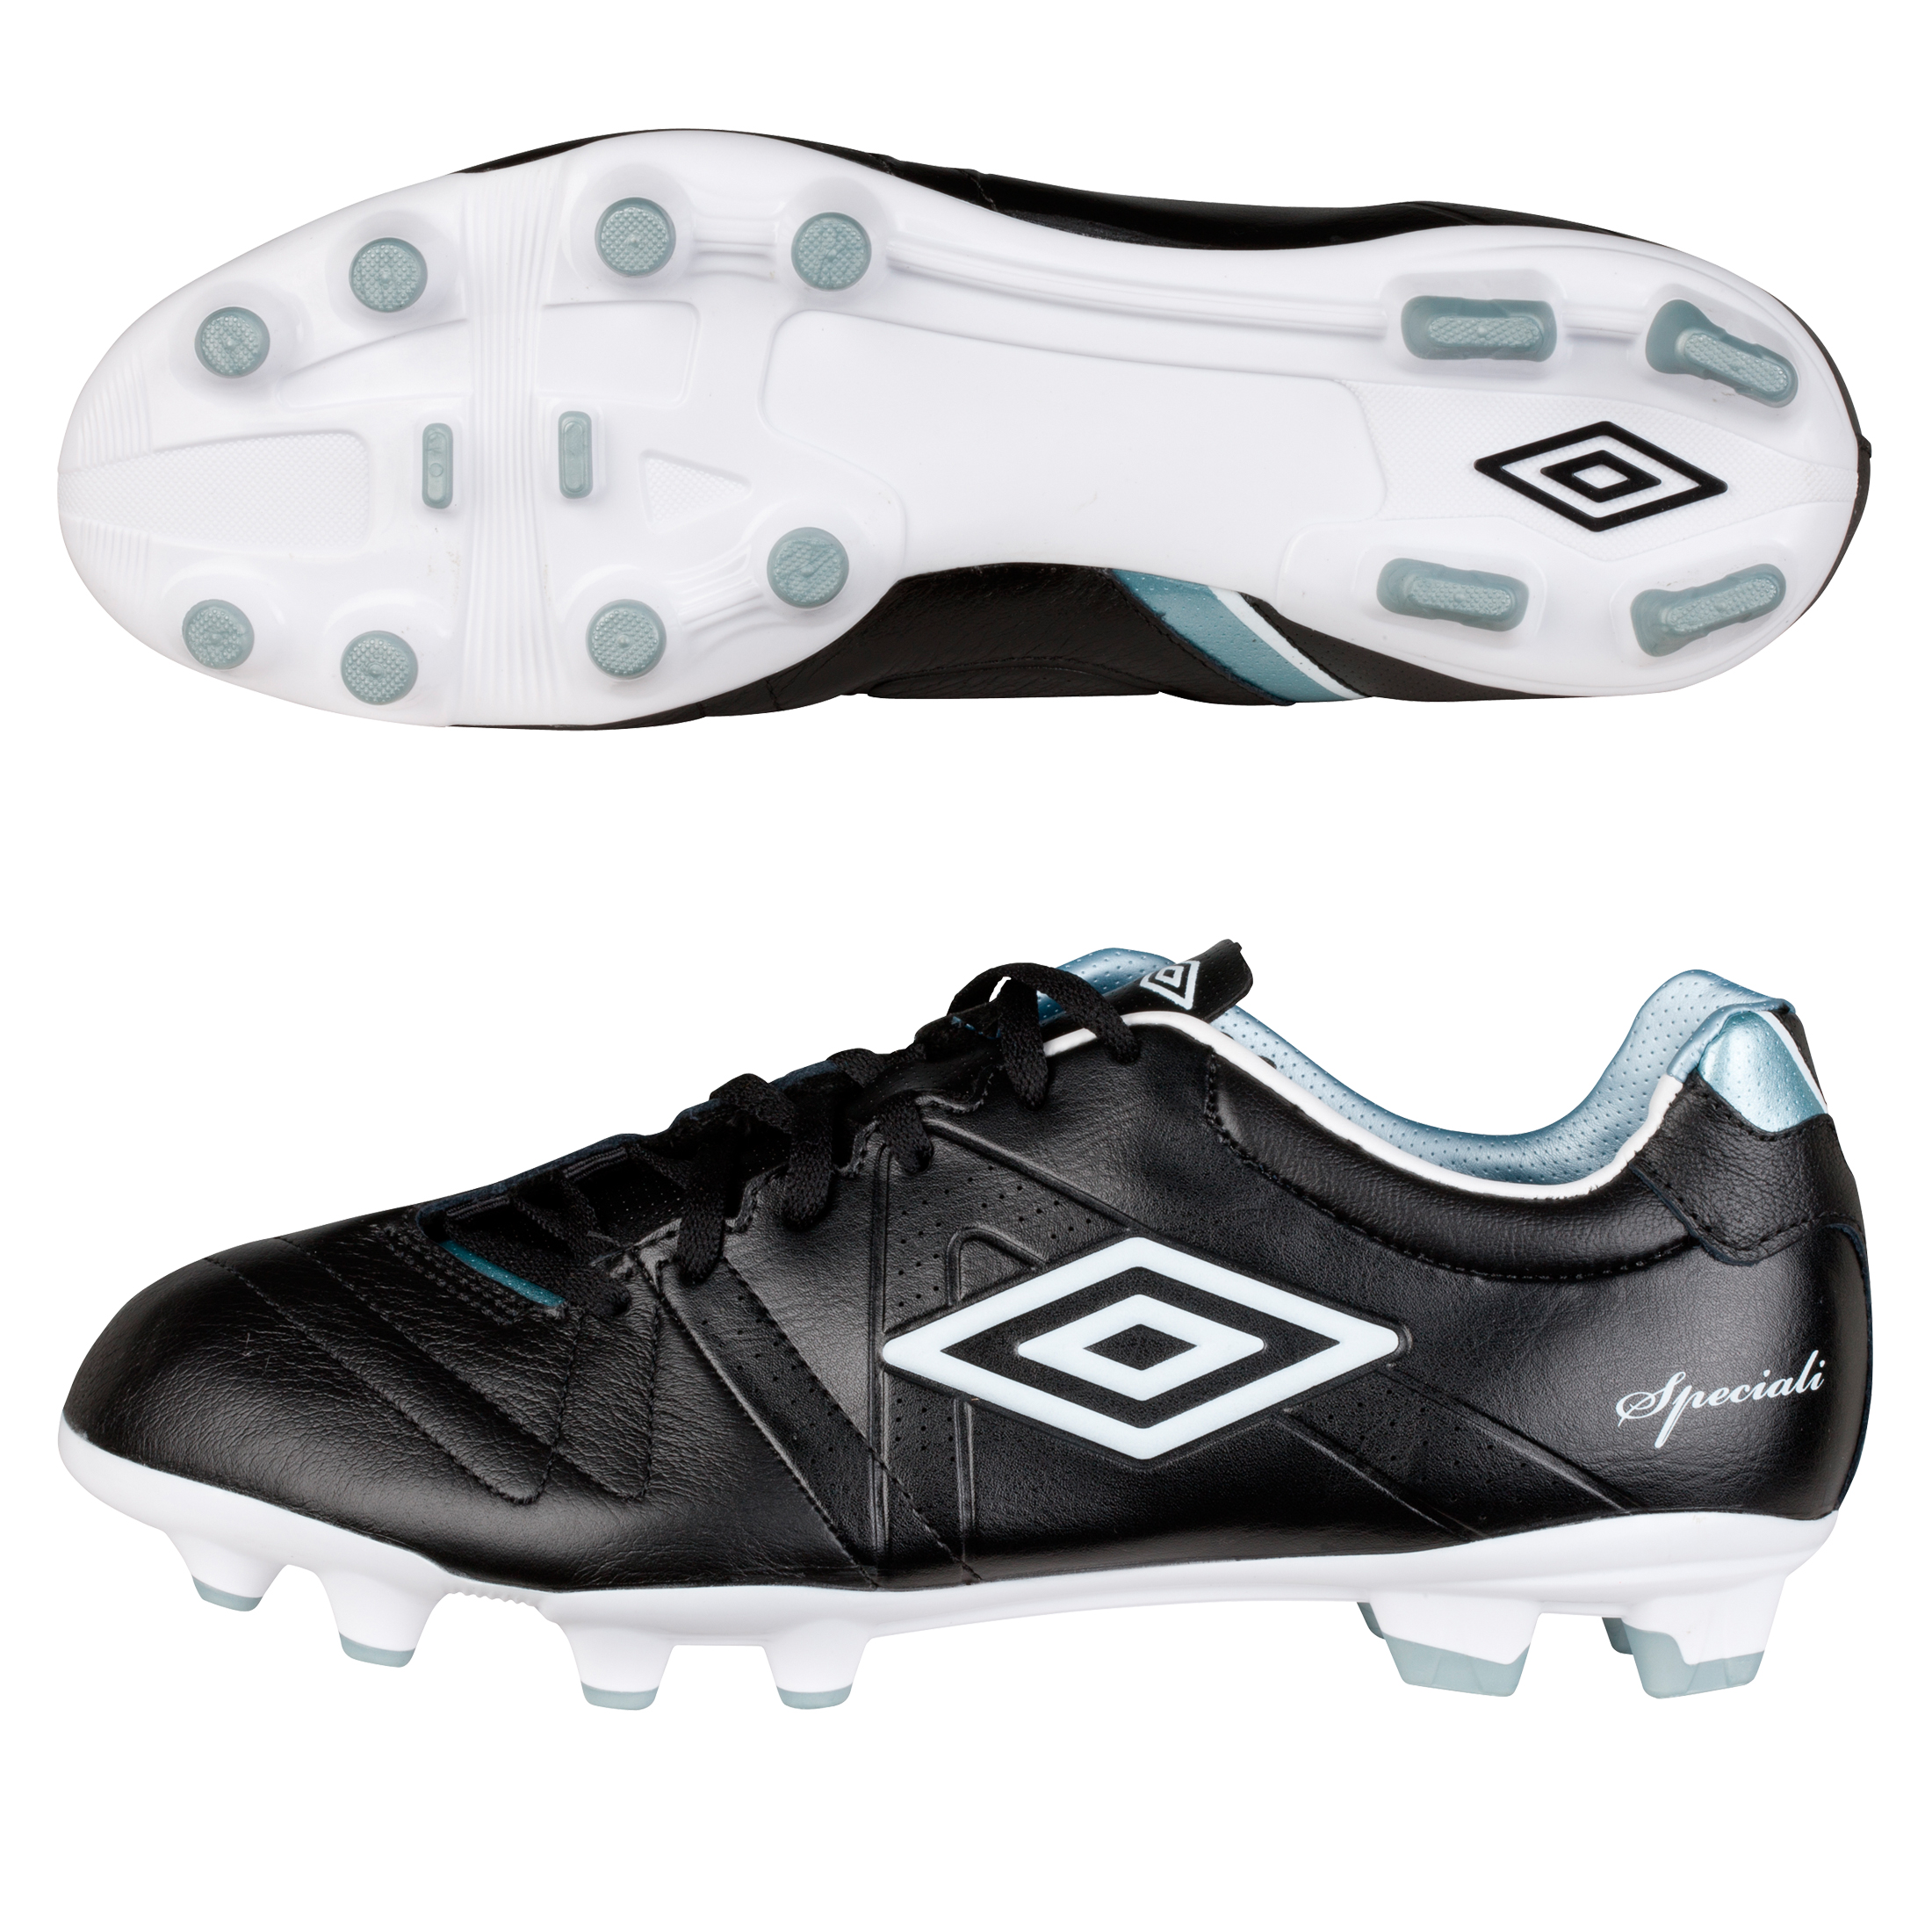 Umbro Speciali 3 Cup Hard Ground Football Boots - Black/White/Chrome - Kids